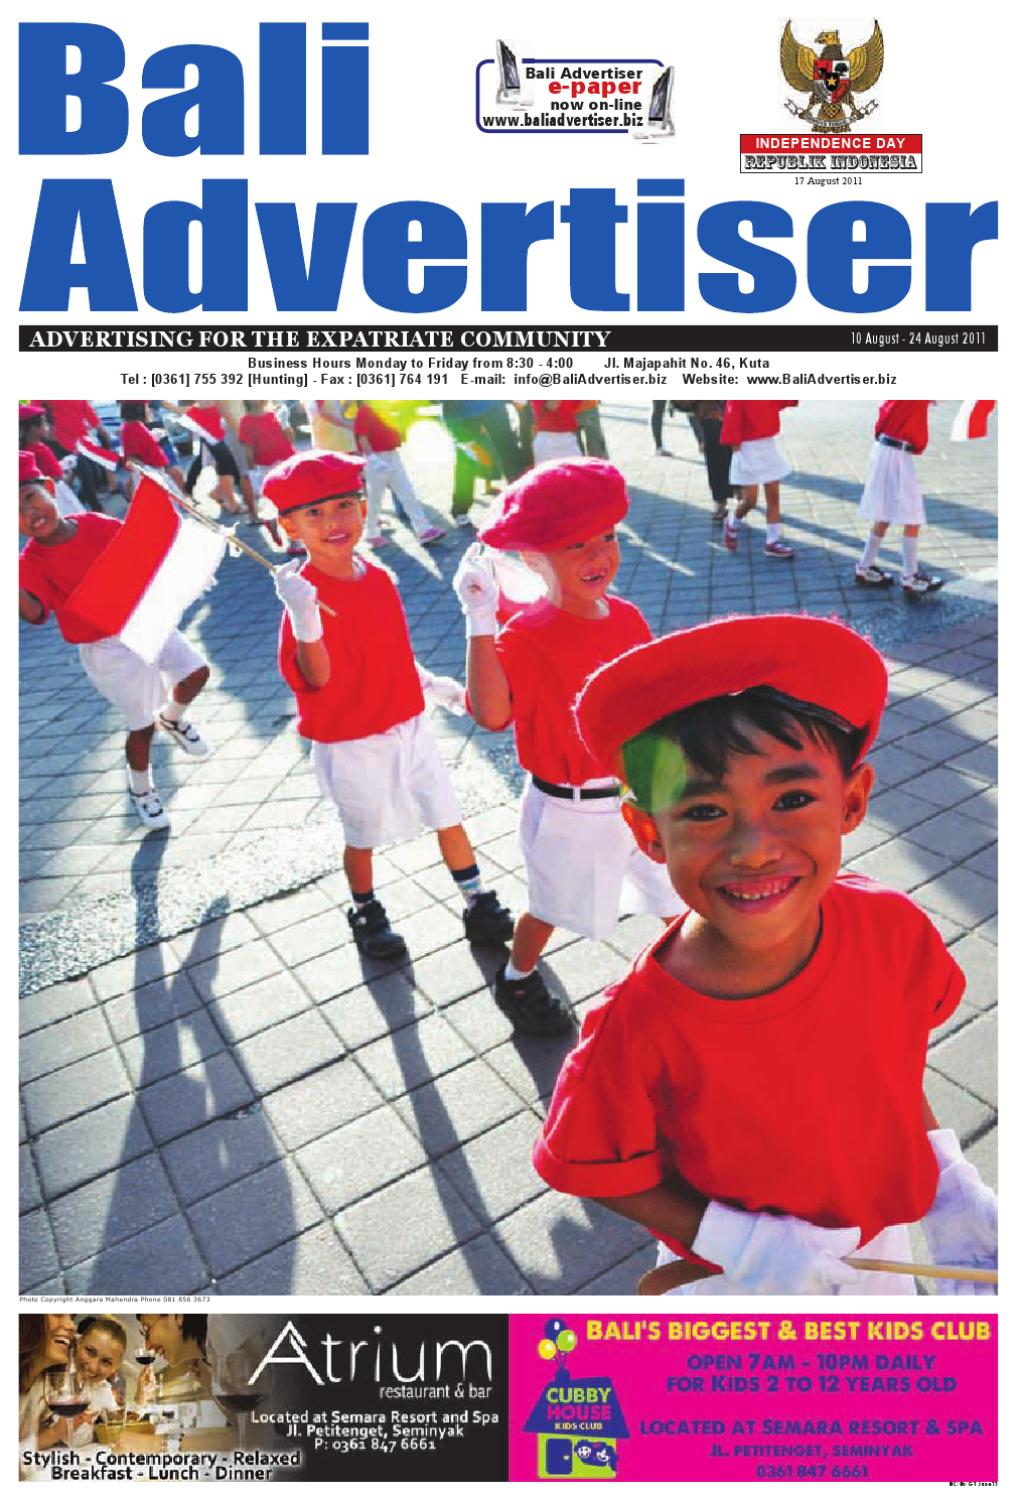 bd5fe9bb2ad3 BA 10 August 2011 by Bali Advertiser - issuu